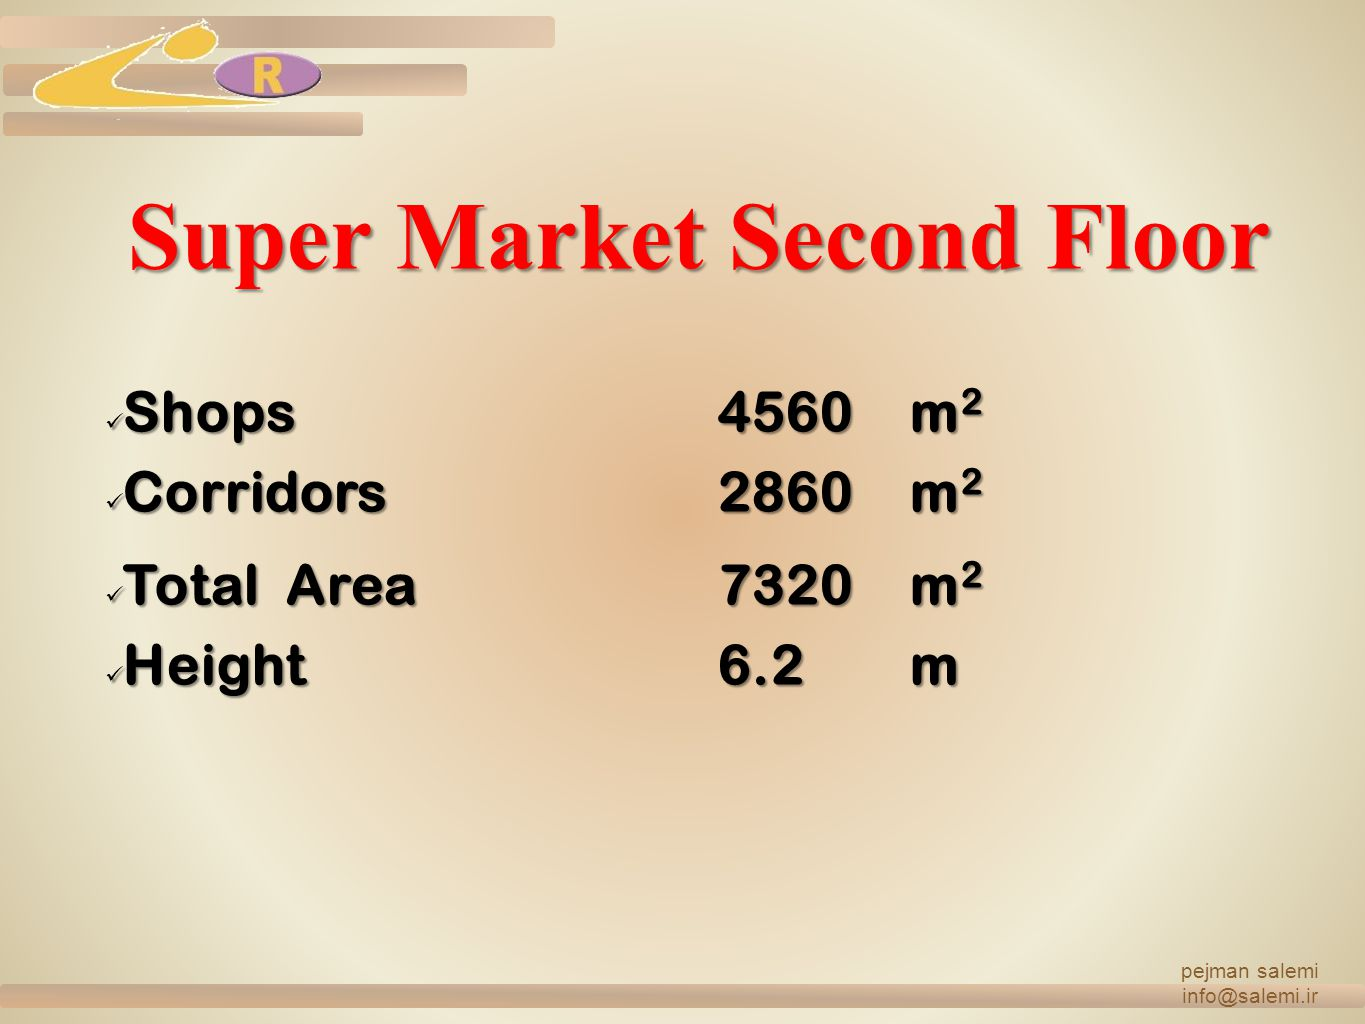 Super Market Second Floor